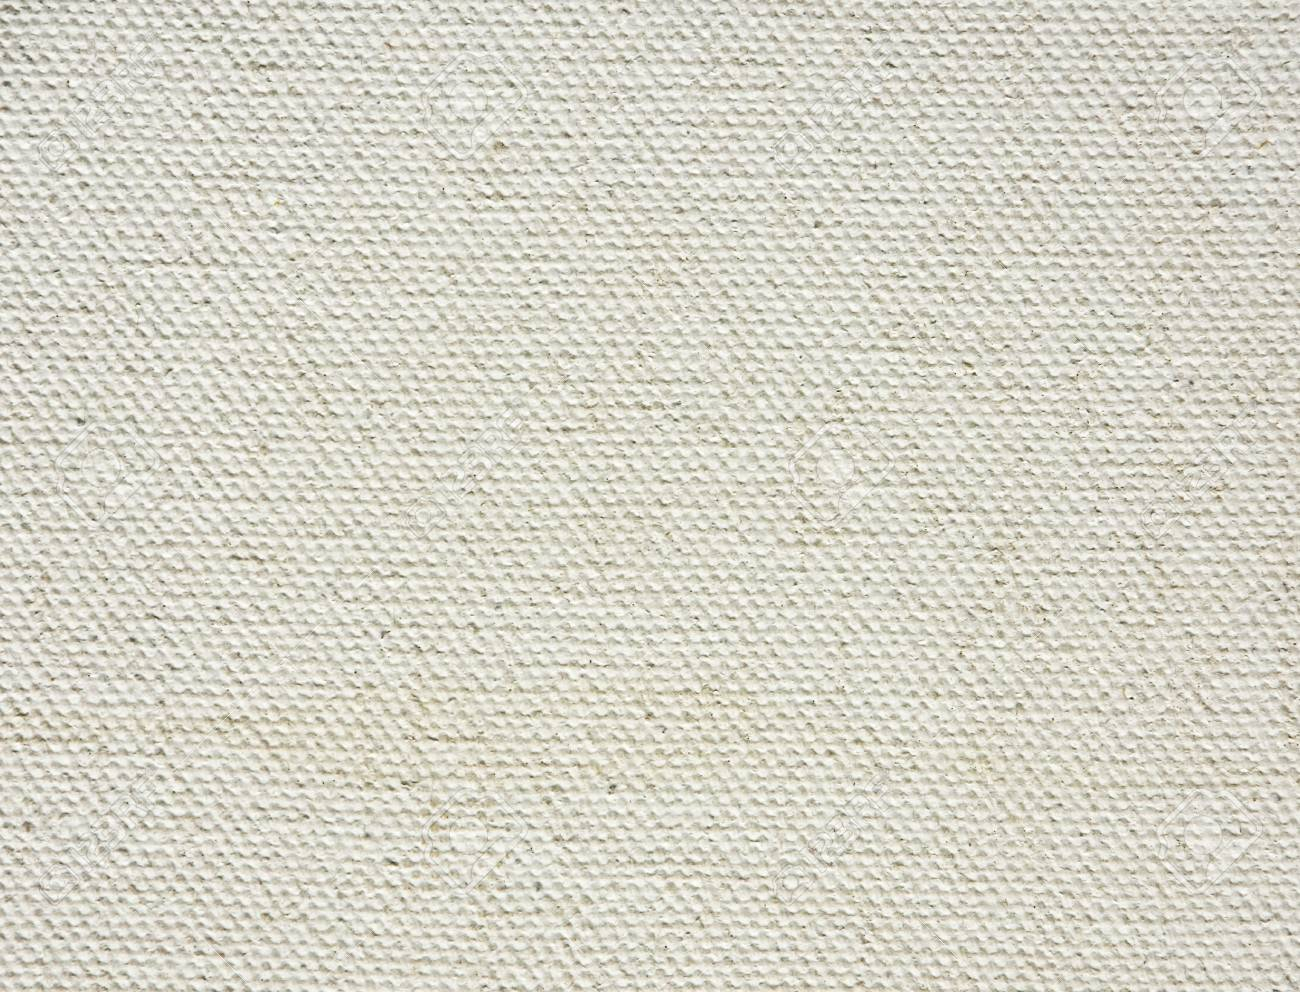 White Canvas Texture Background Framed For Painting Stock